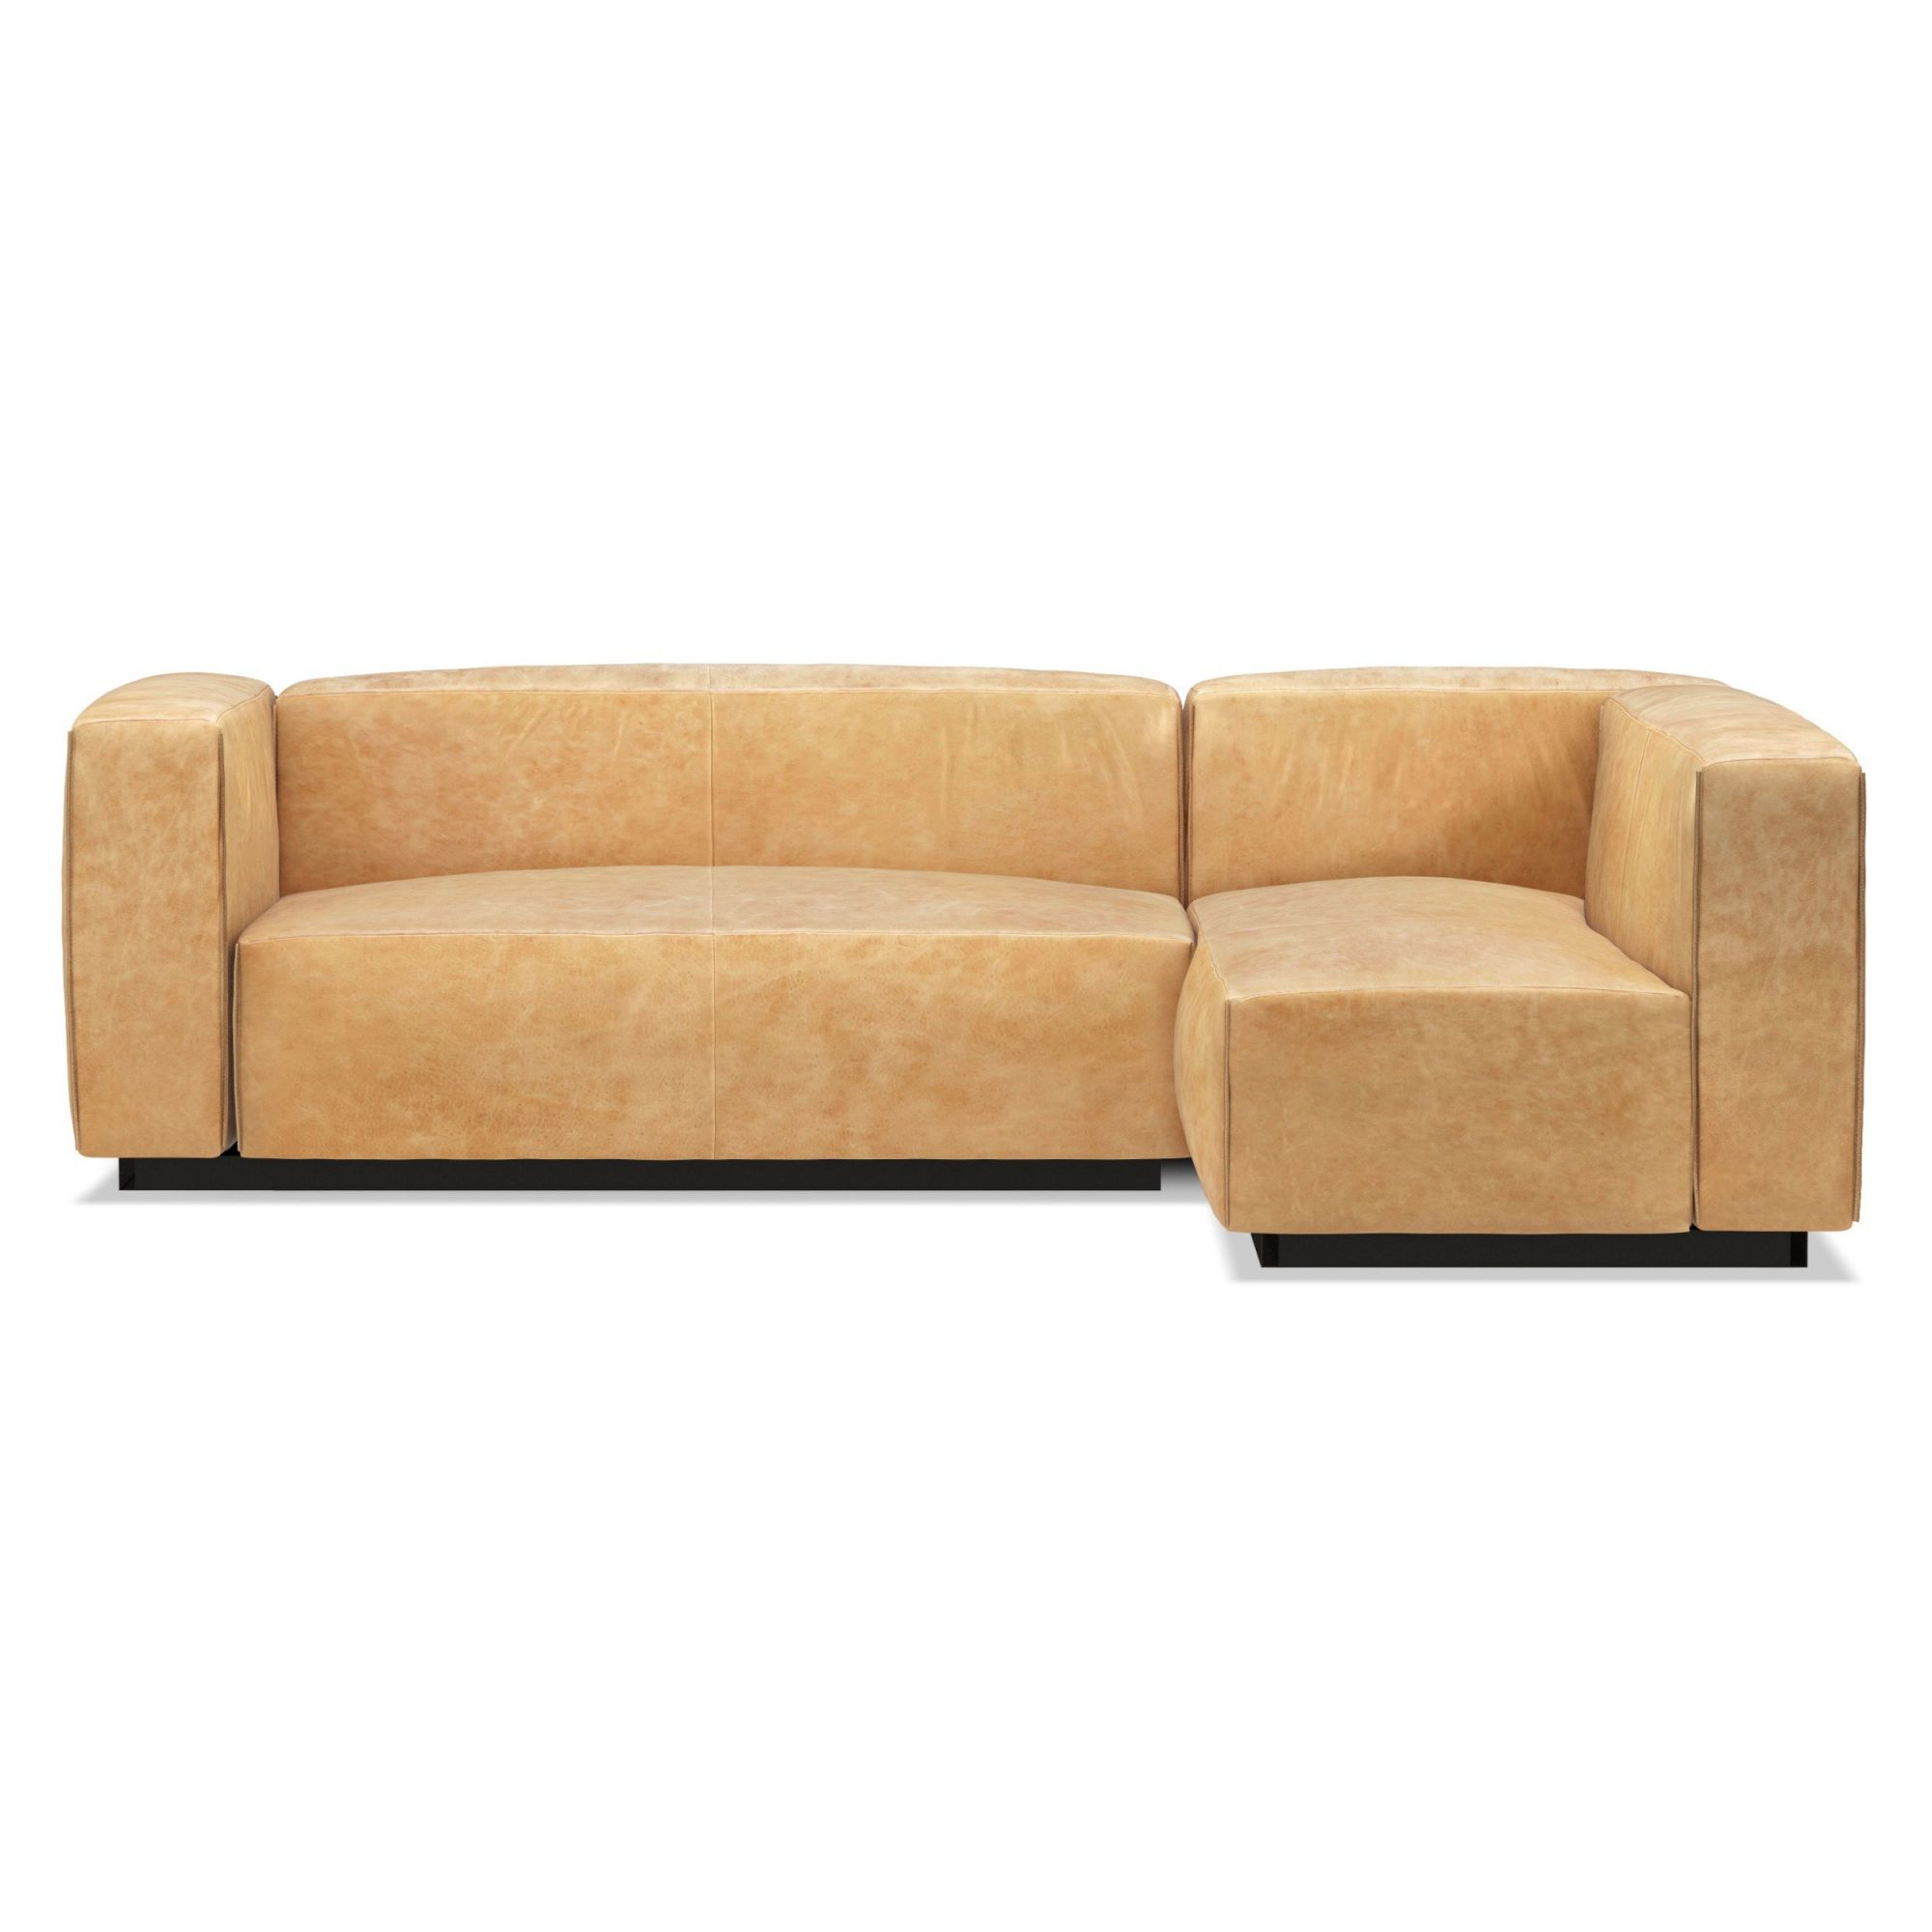 Cleon Small Leather Sectional Sofa | Allmodern pertaining to Best of Leather Sectional Sofa